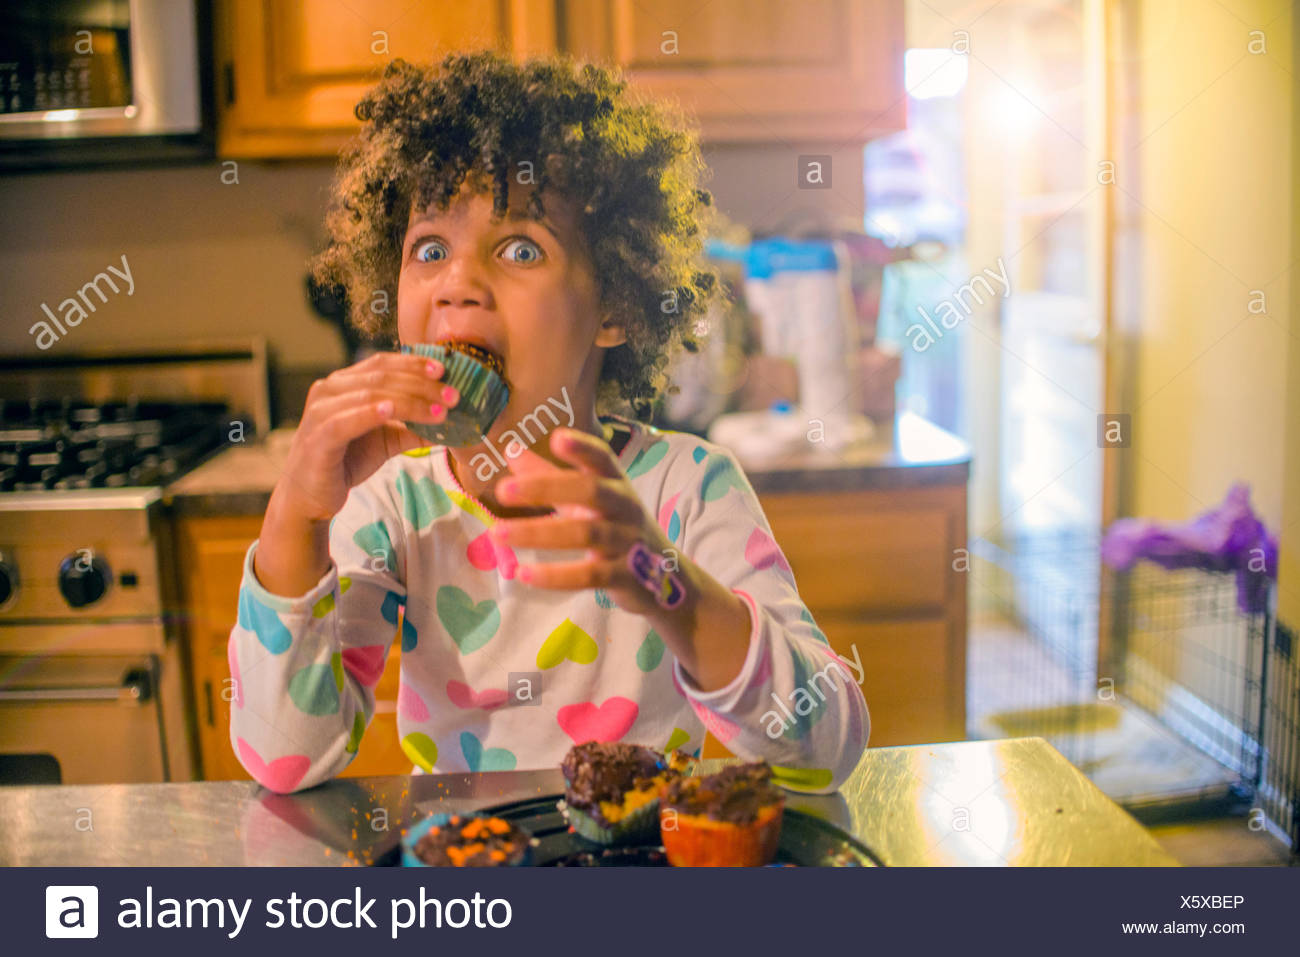 Portrait of surprised girl eating cupcakes at kitchen counter - Stock Image